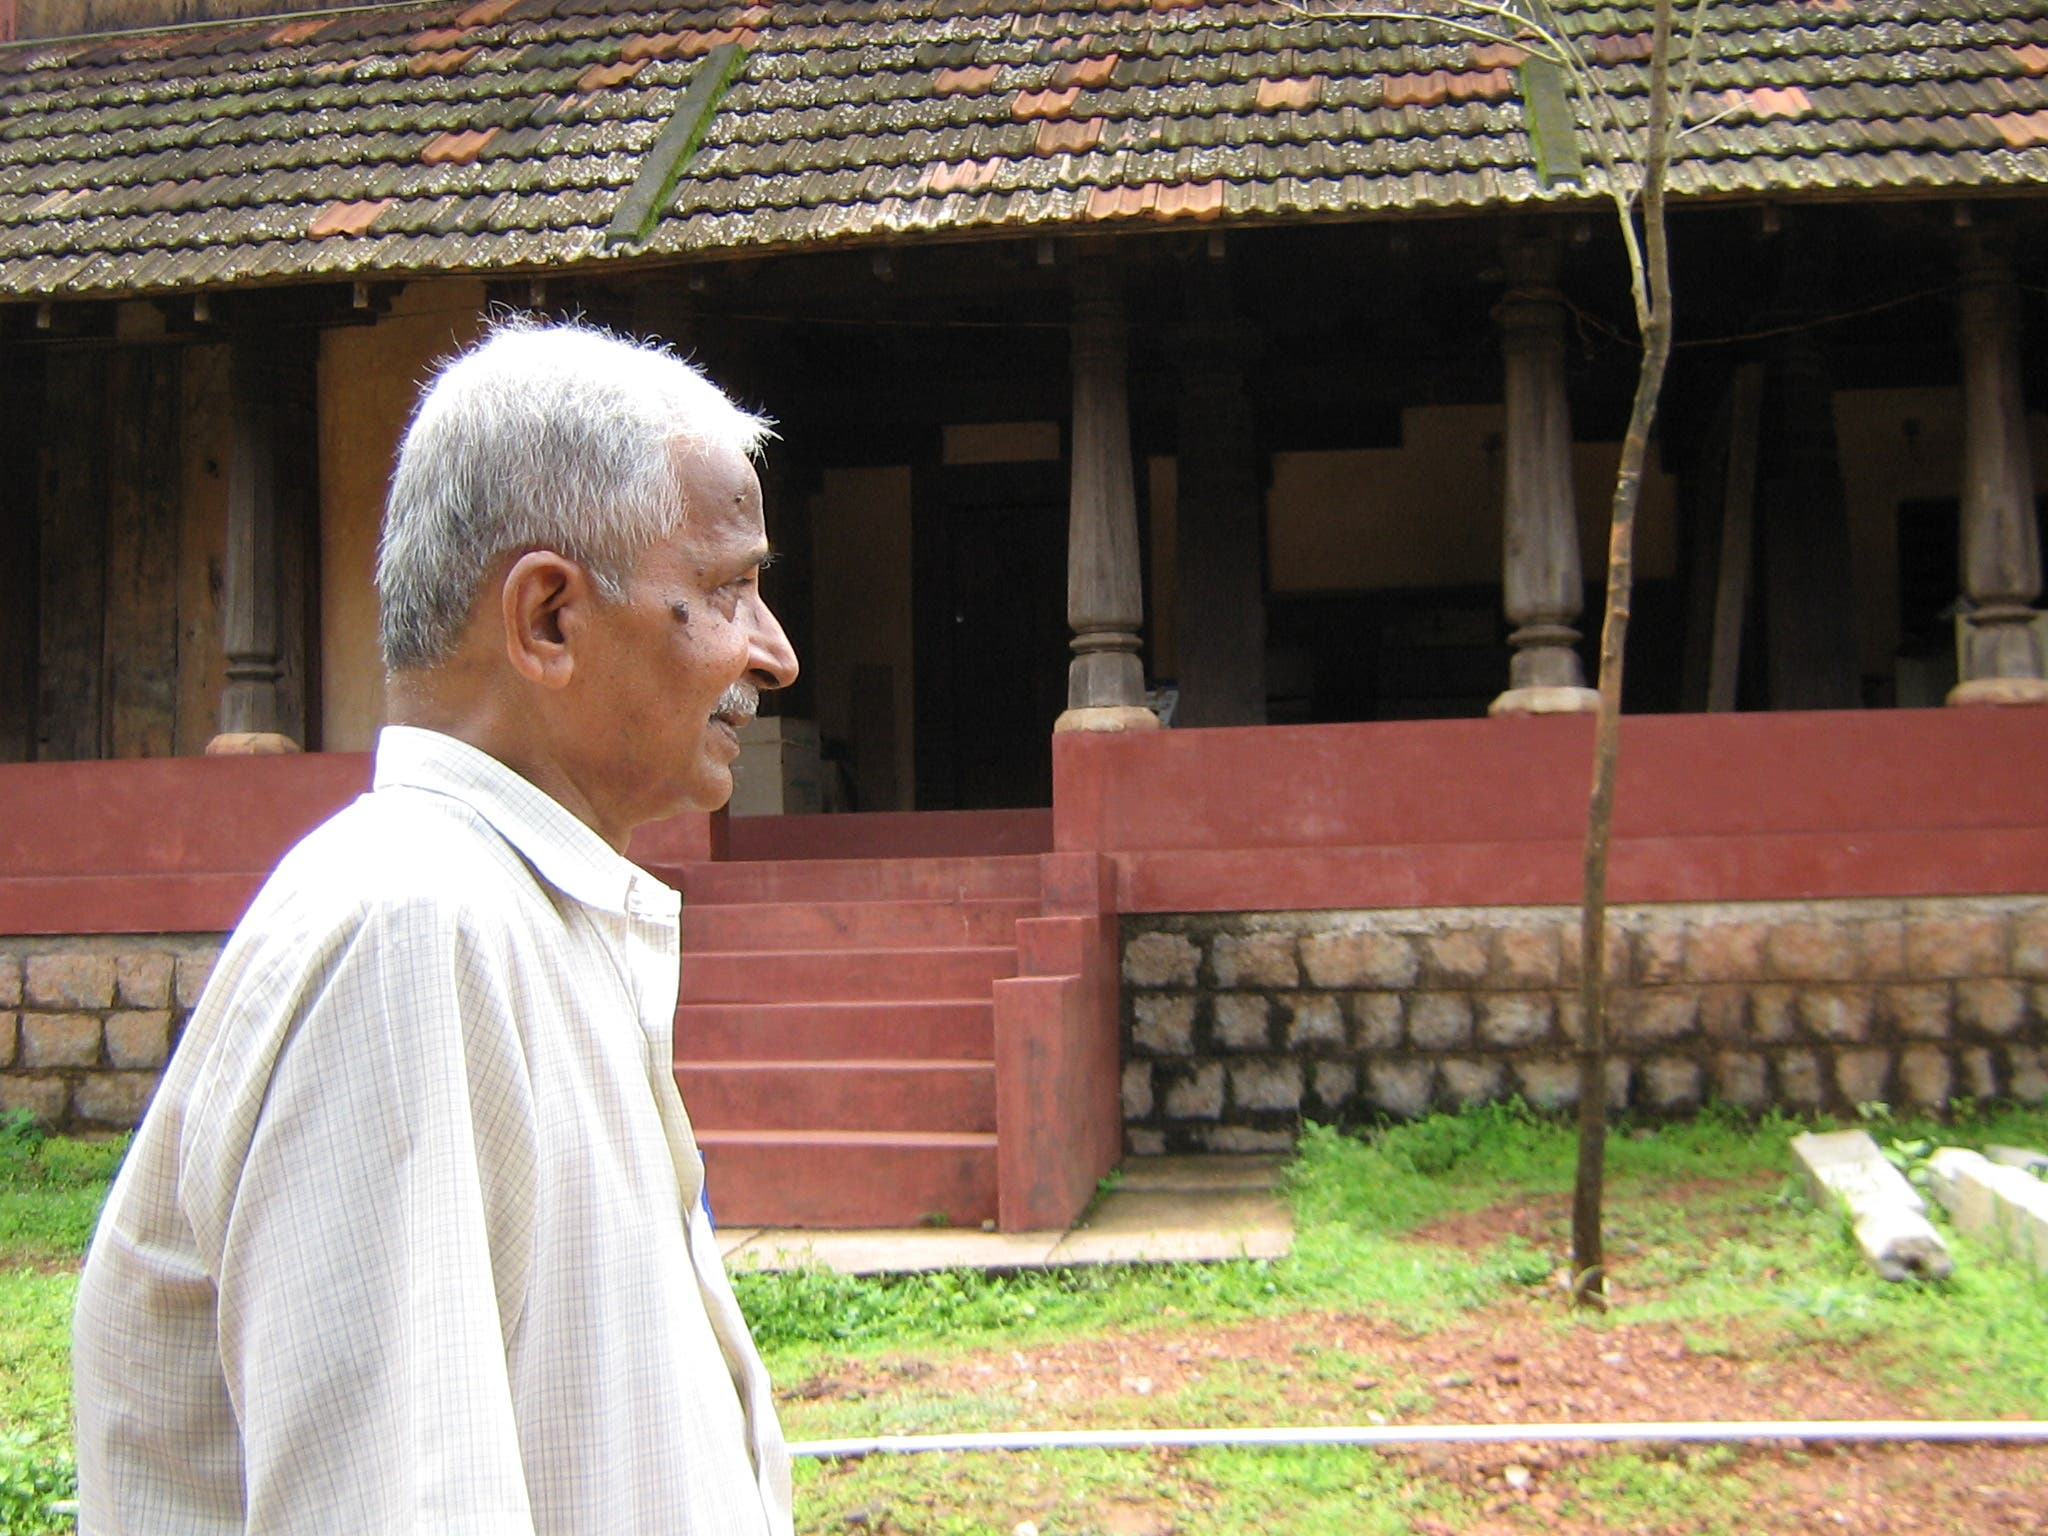 Late Vijayanath Shenoy worked day and night through the hamlets and towns of Karnataka and engaged himself in locating the heritage houses. (Supplied)